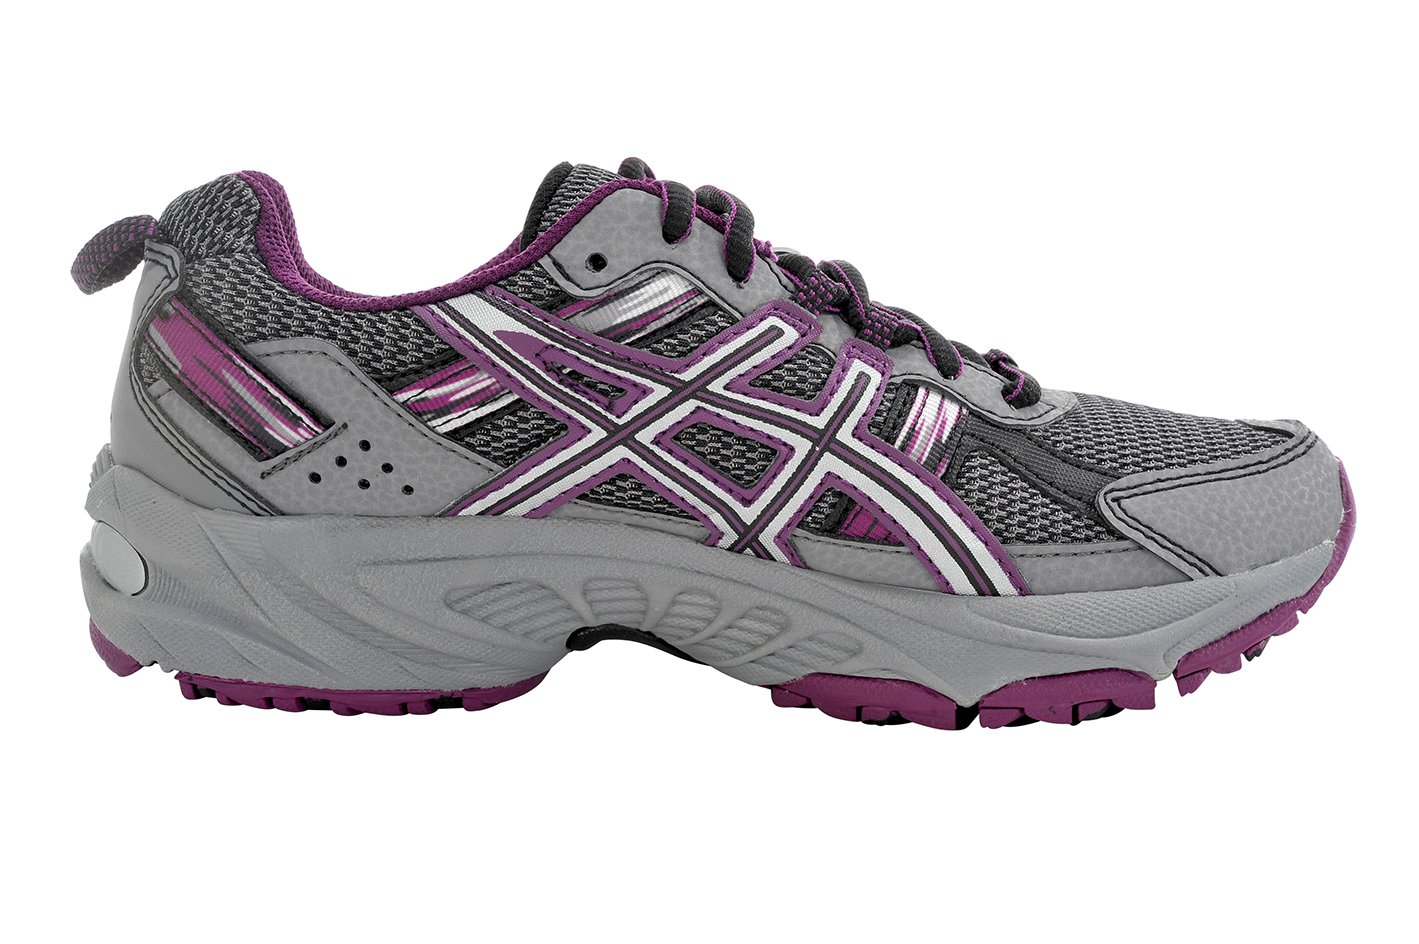 ASICS Women's Gel-Venture 5 Trail Running Shoe, Frost Gray/Gray/Silver/Magenta, 6 M US by ASICS (Image #4)